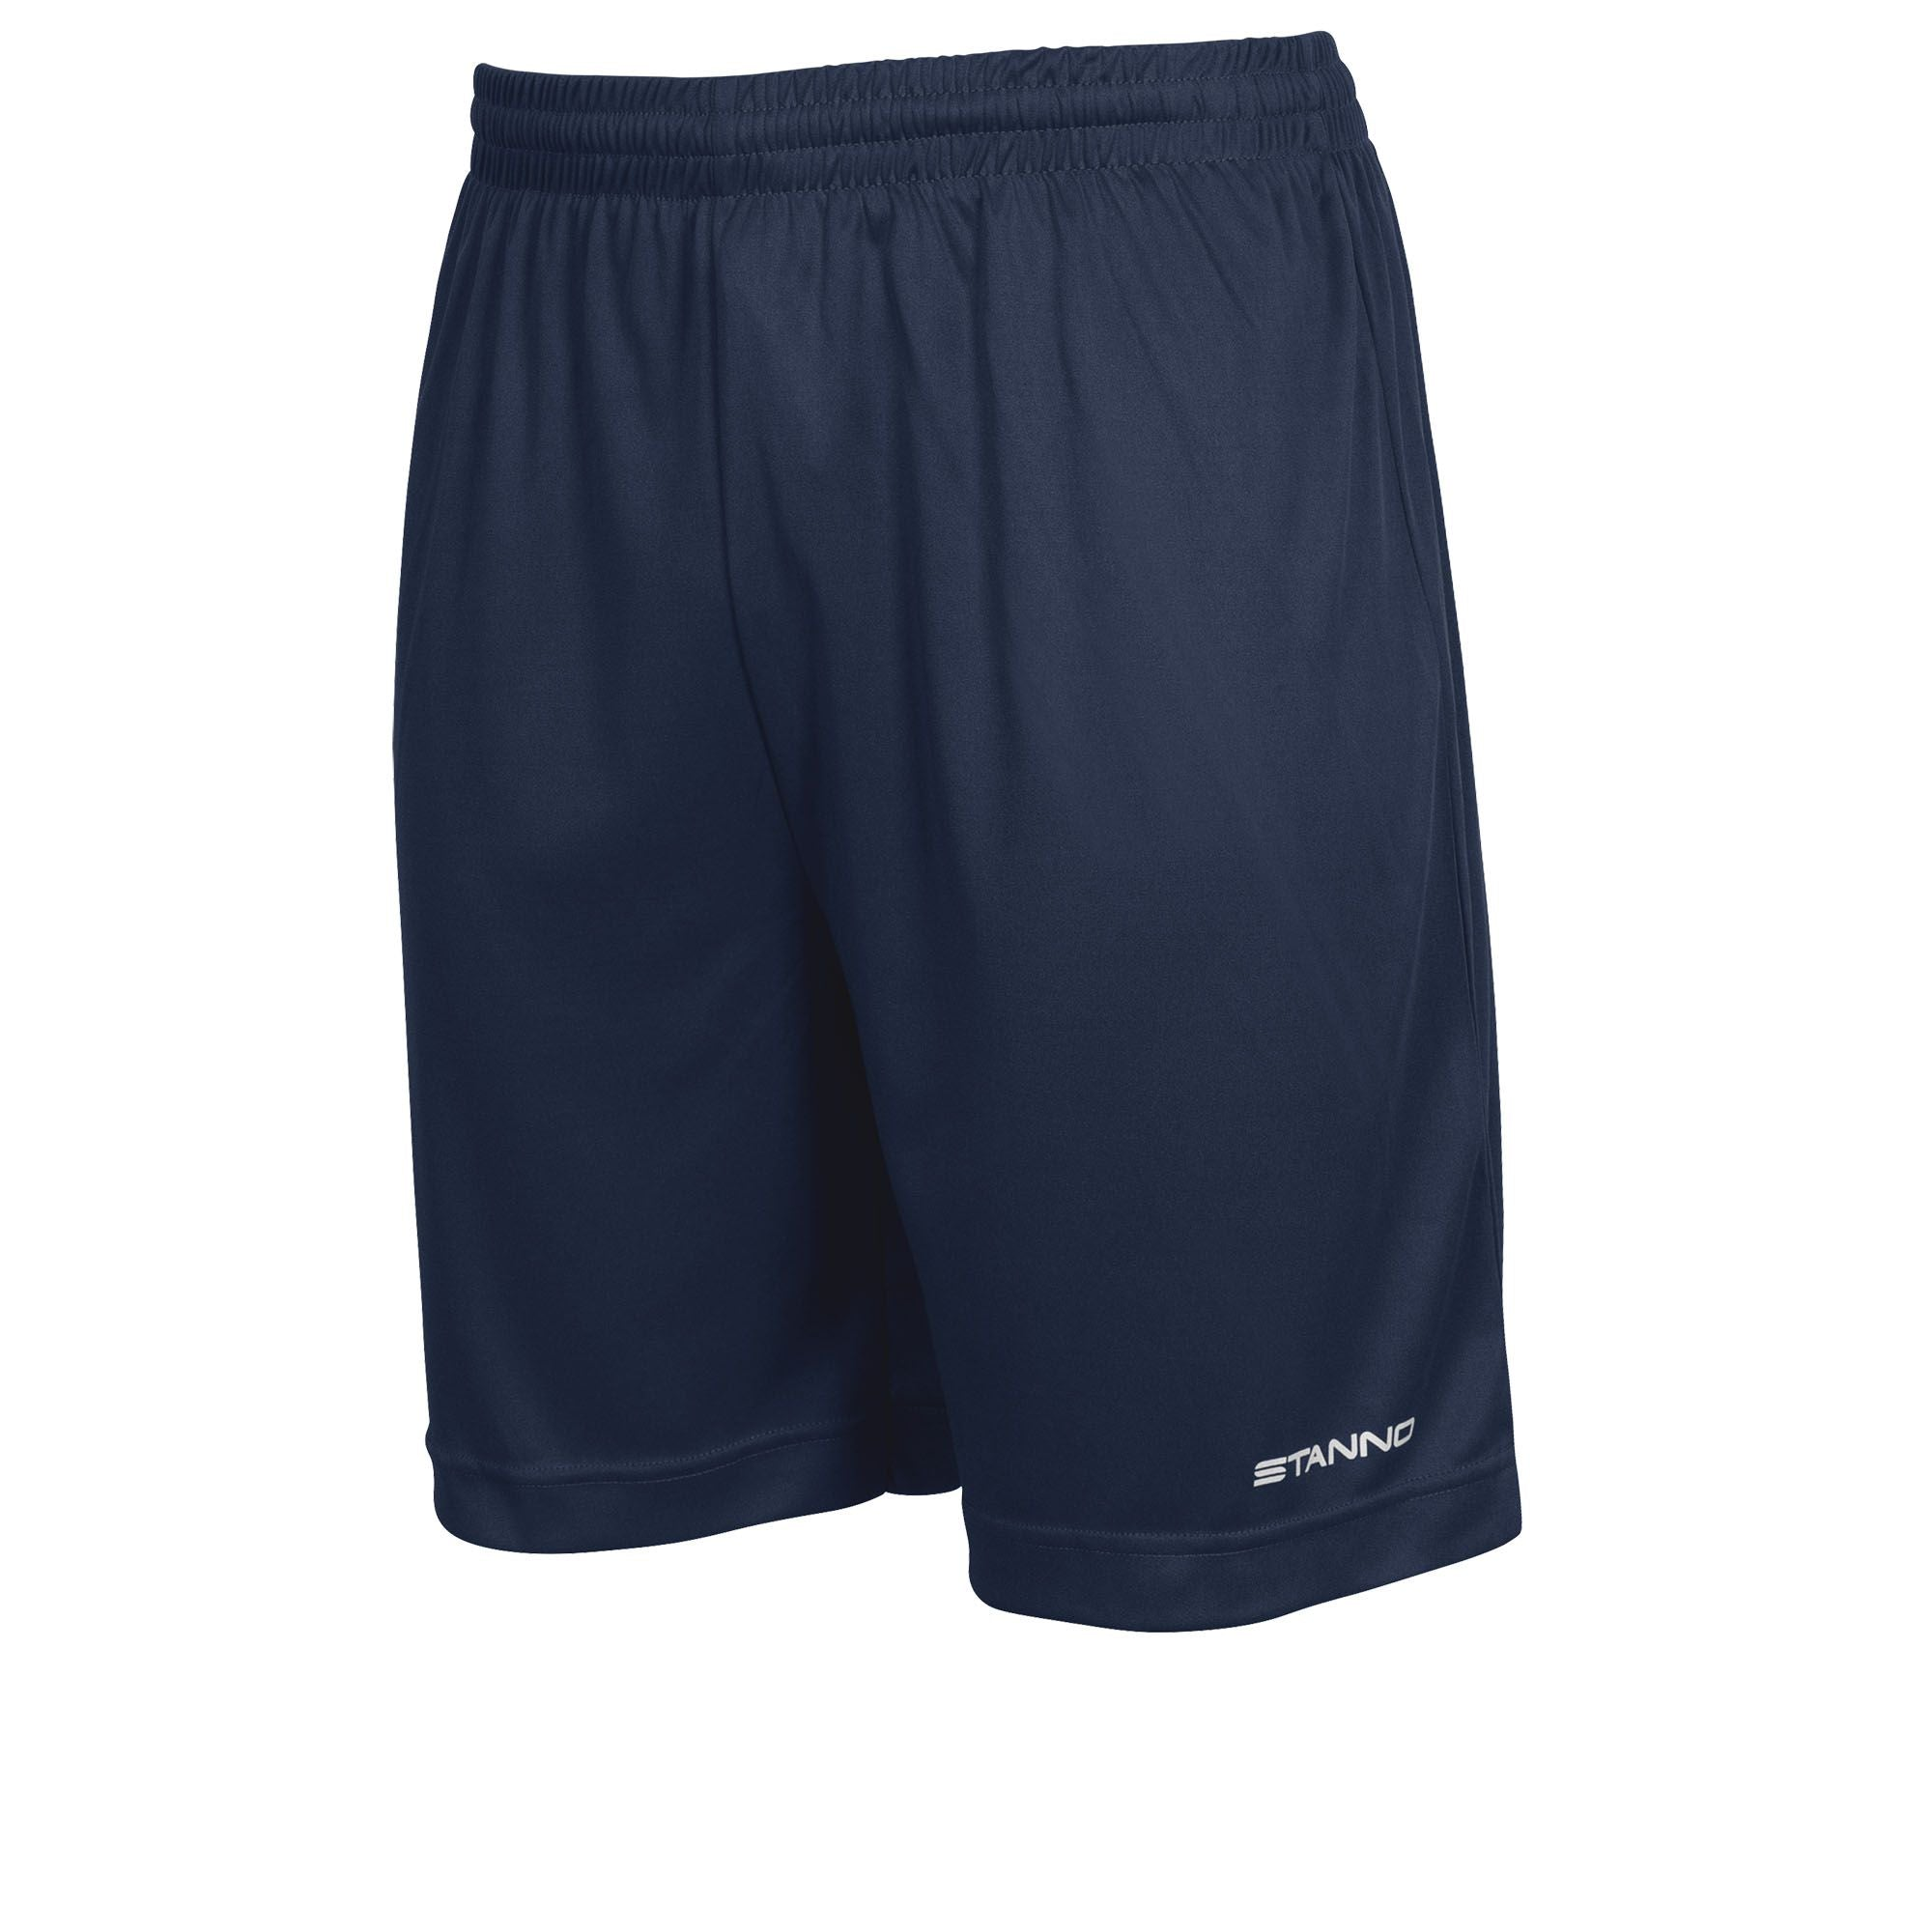 Stanno Field Shorts in navy